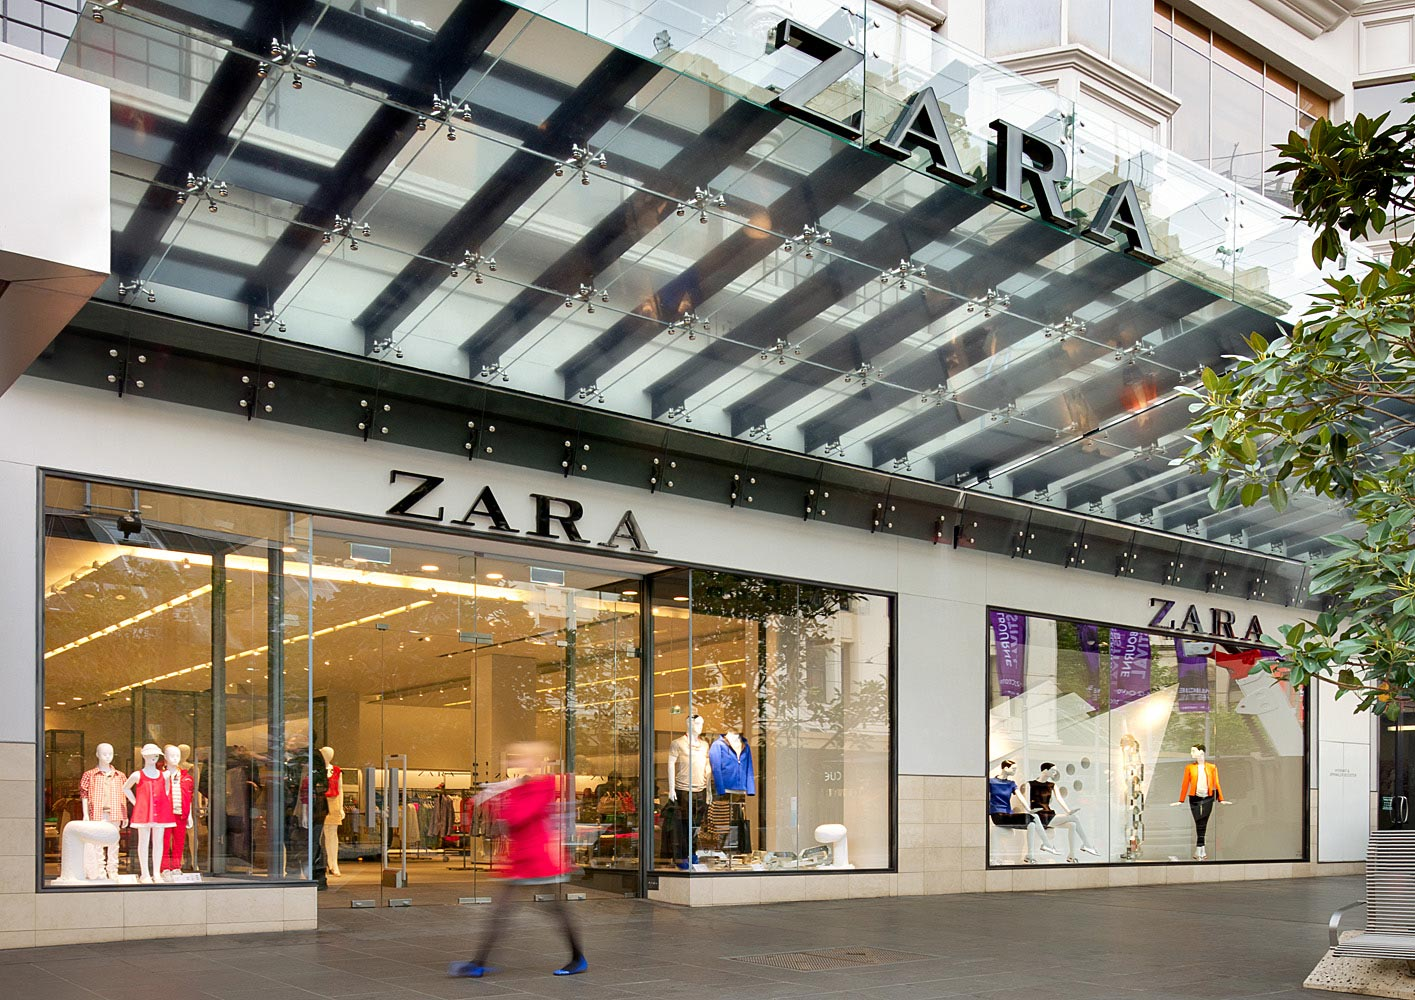 Alpha Project Management has helped the Zara's Melbourne store